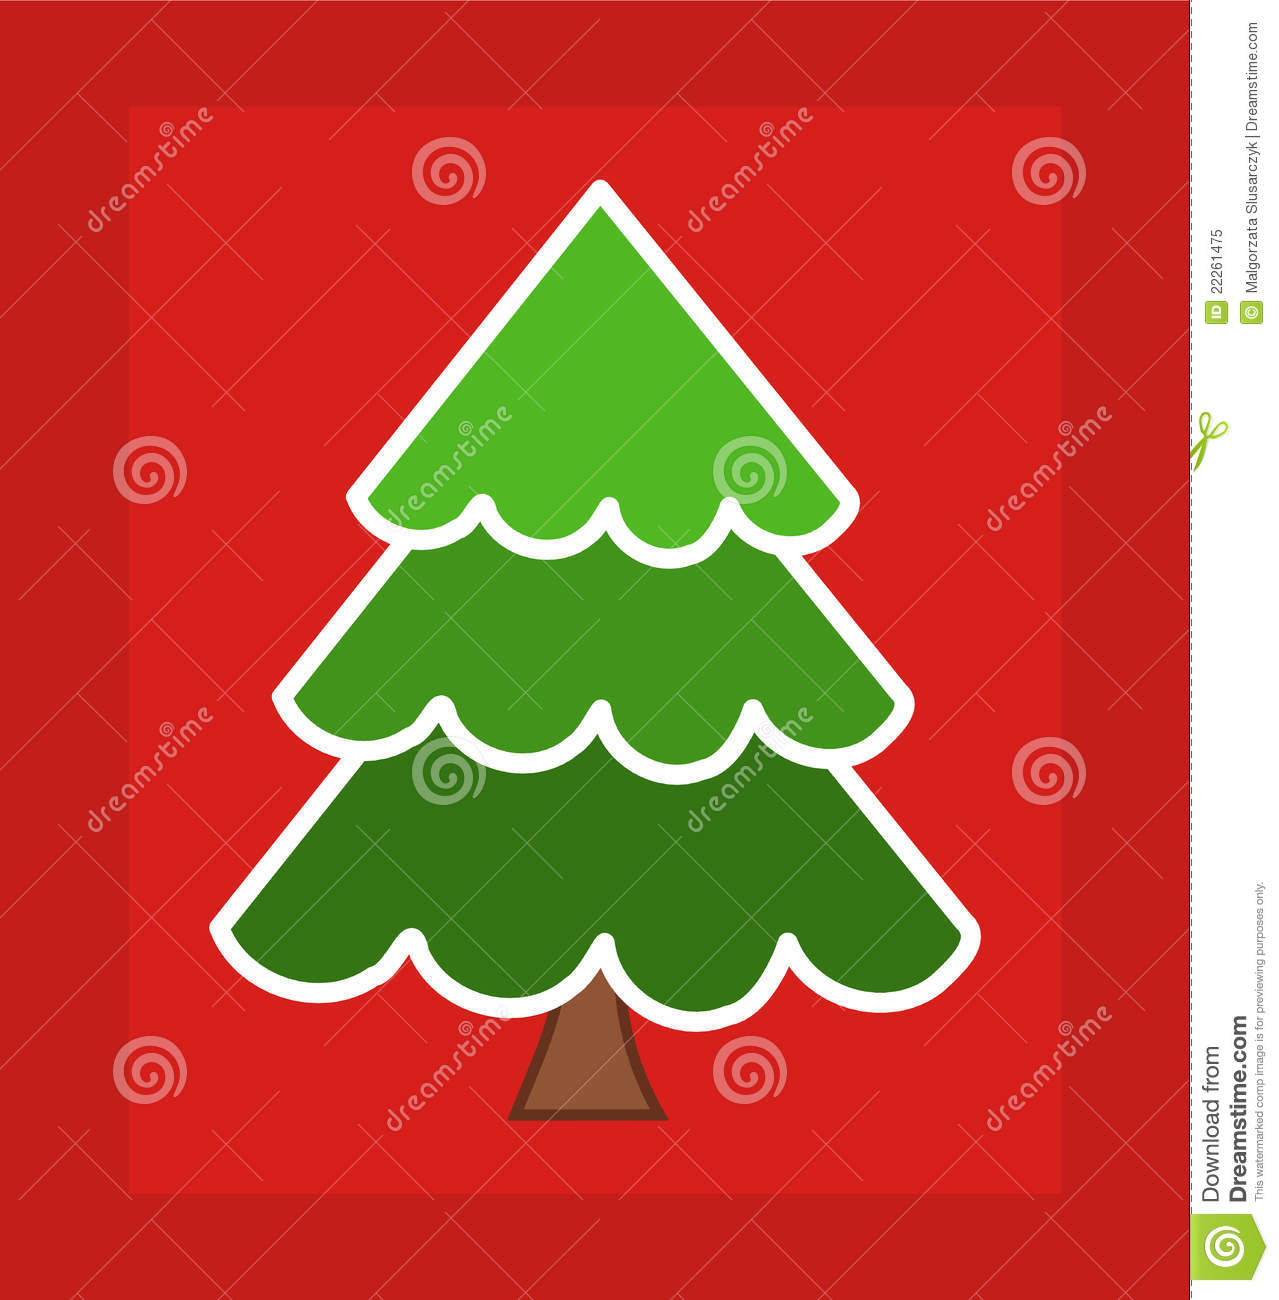 royalty free stock photo download christmas tree card - Christmas Tree Card